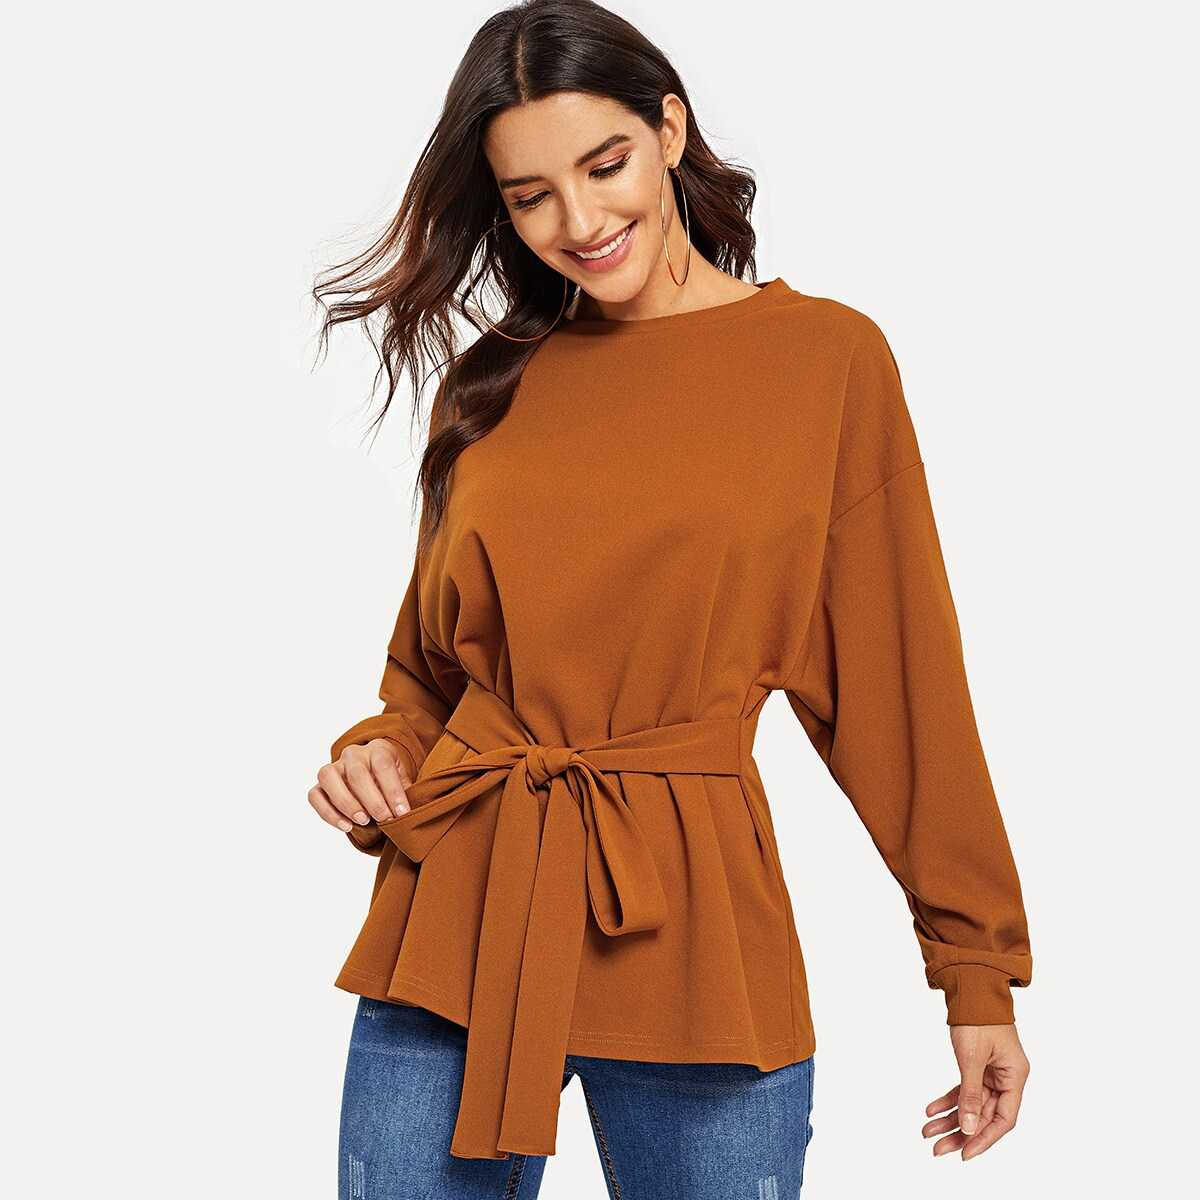 Drop Shoulder Batwing Sleeve Knotted Top - Shein - GOOFASH